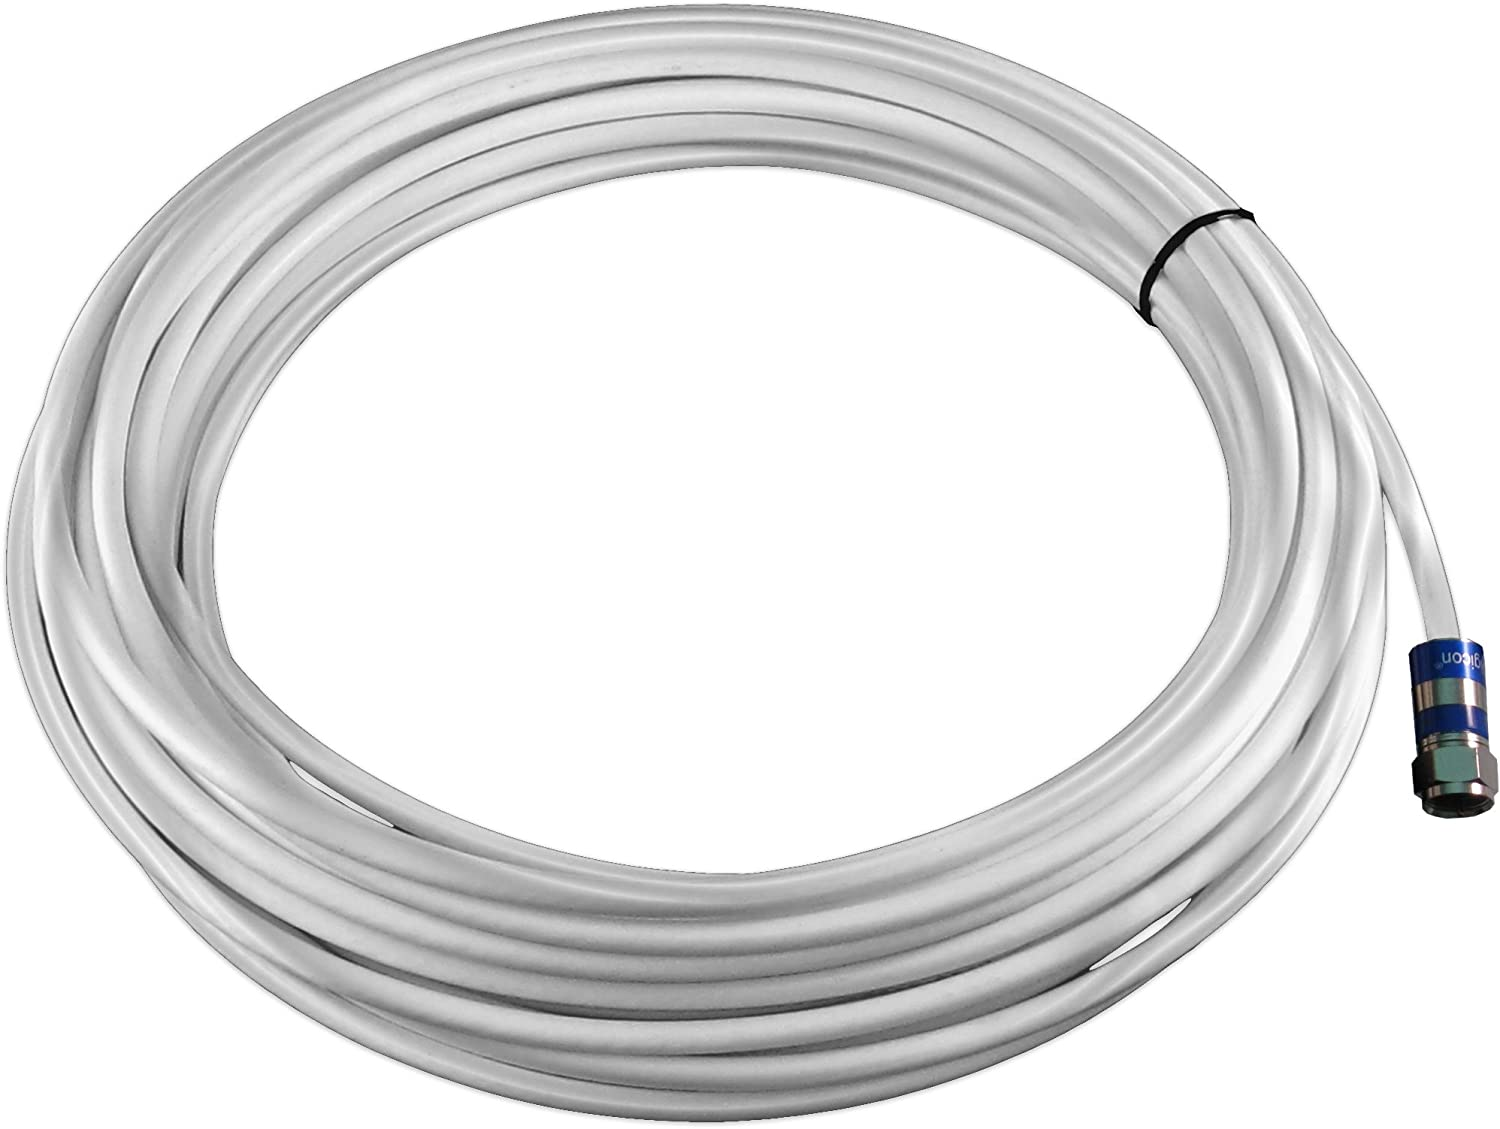 15 Feet zBoost YX030-15W RG-6 Coaxial Extension Cable with Female Connectors